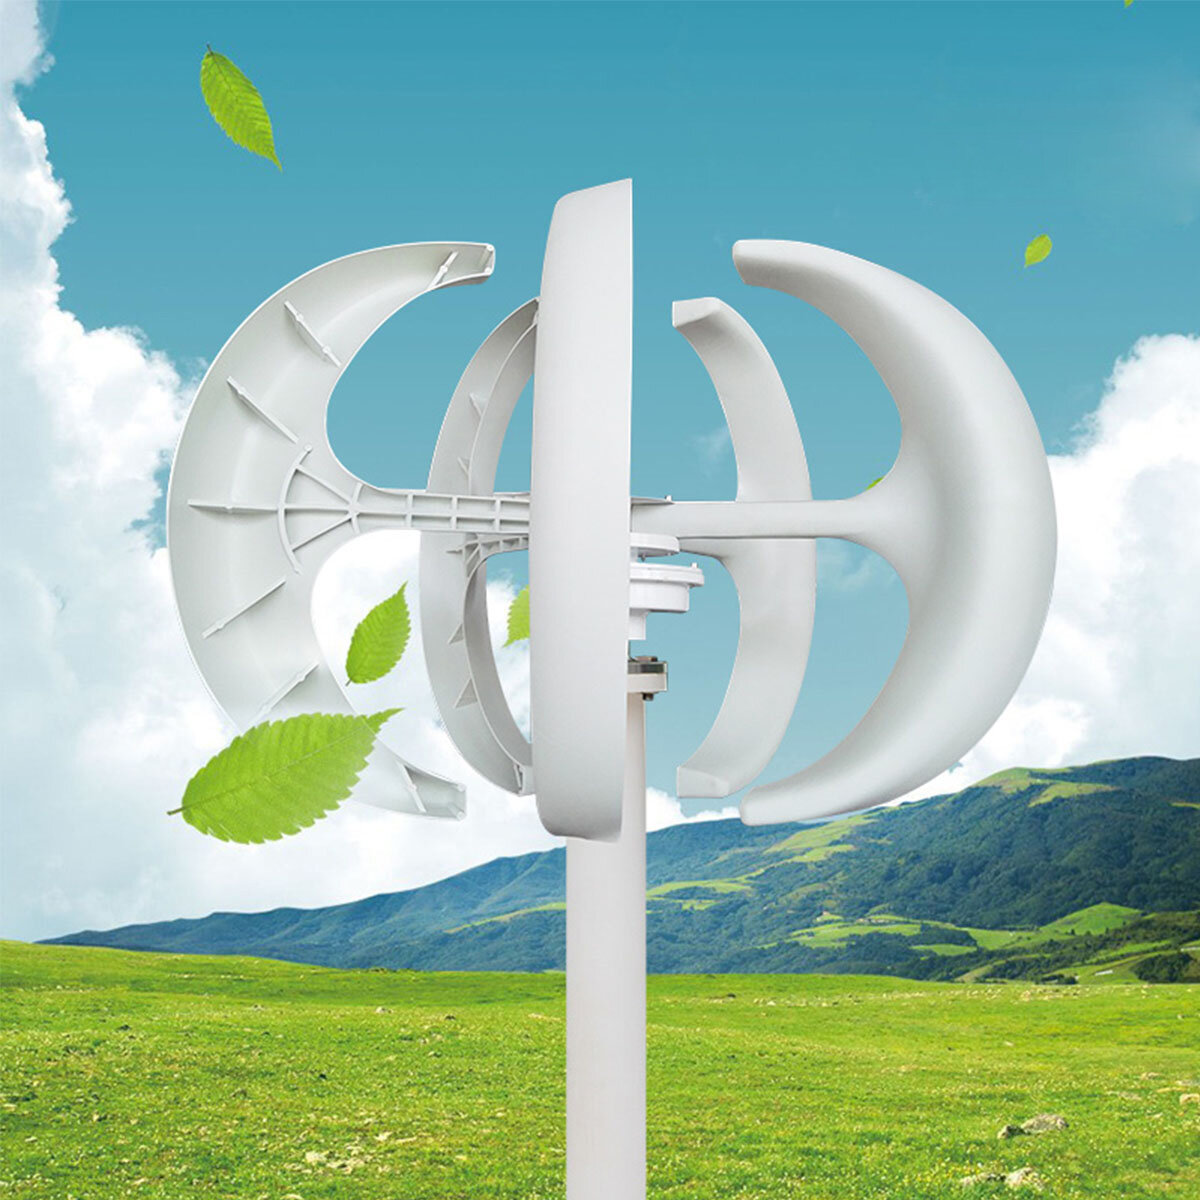 1000W/1200W/1500W DC 12/24V 5 Blades Wind Turbine Generator Vertical with Charge Controller